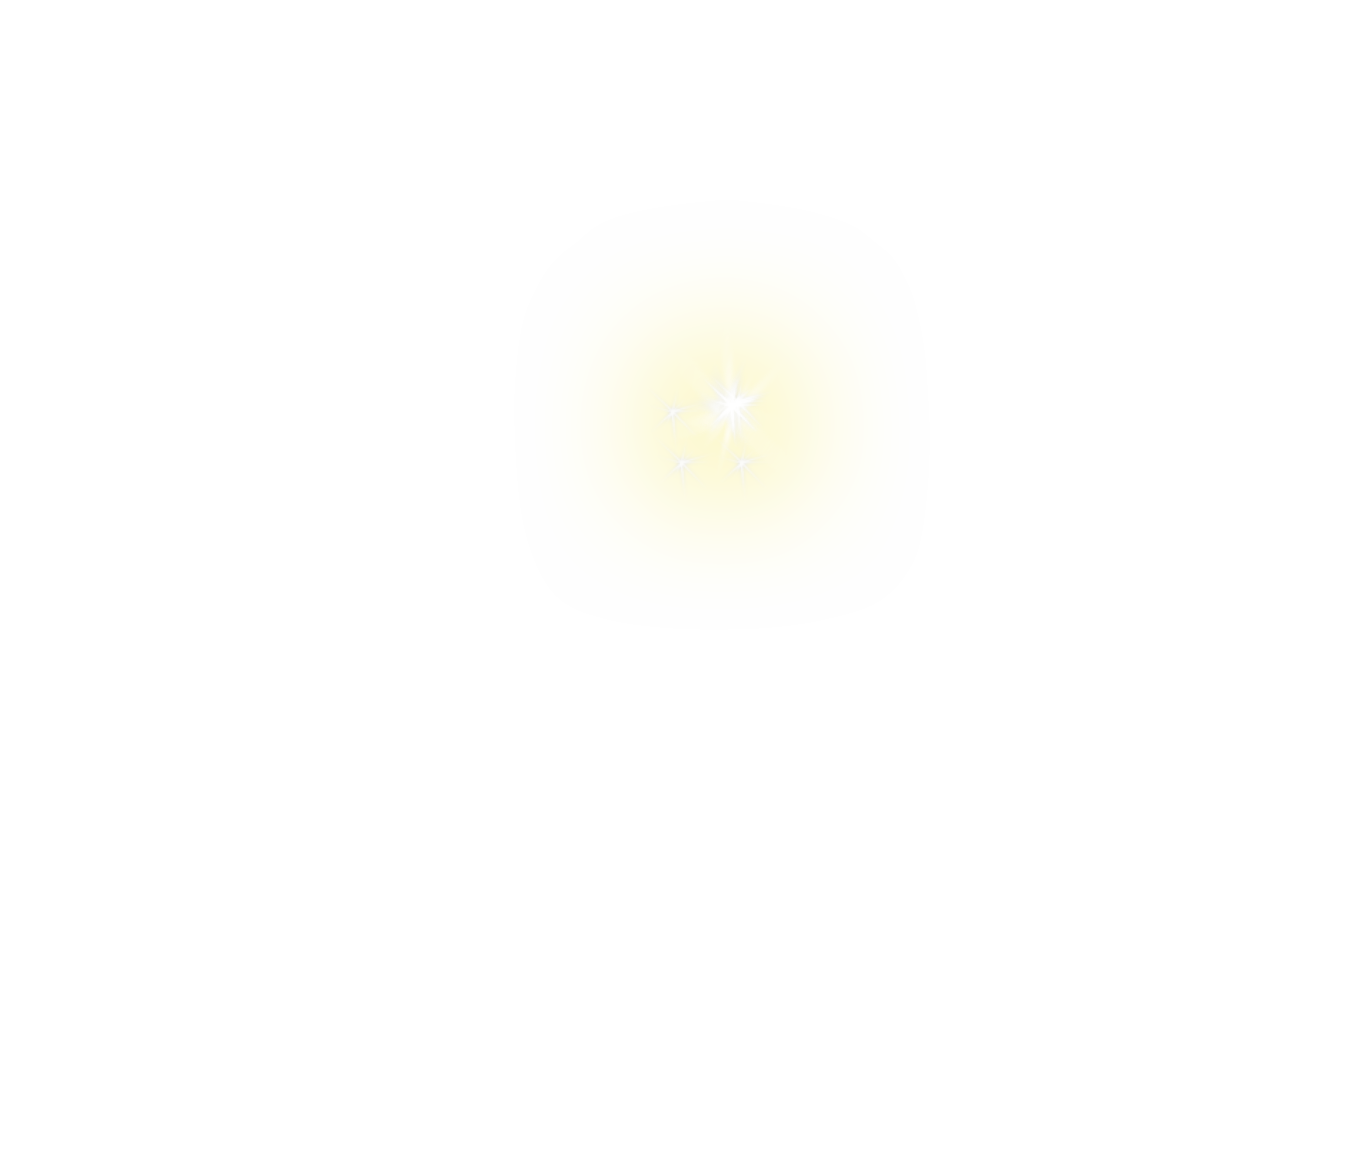 Teeth sparkle png. Transparent pictures free icons